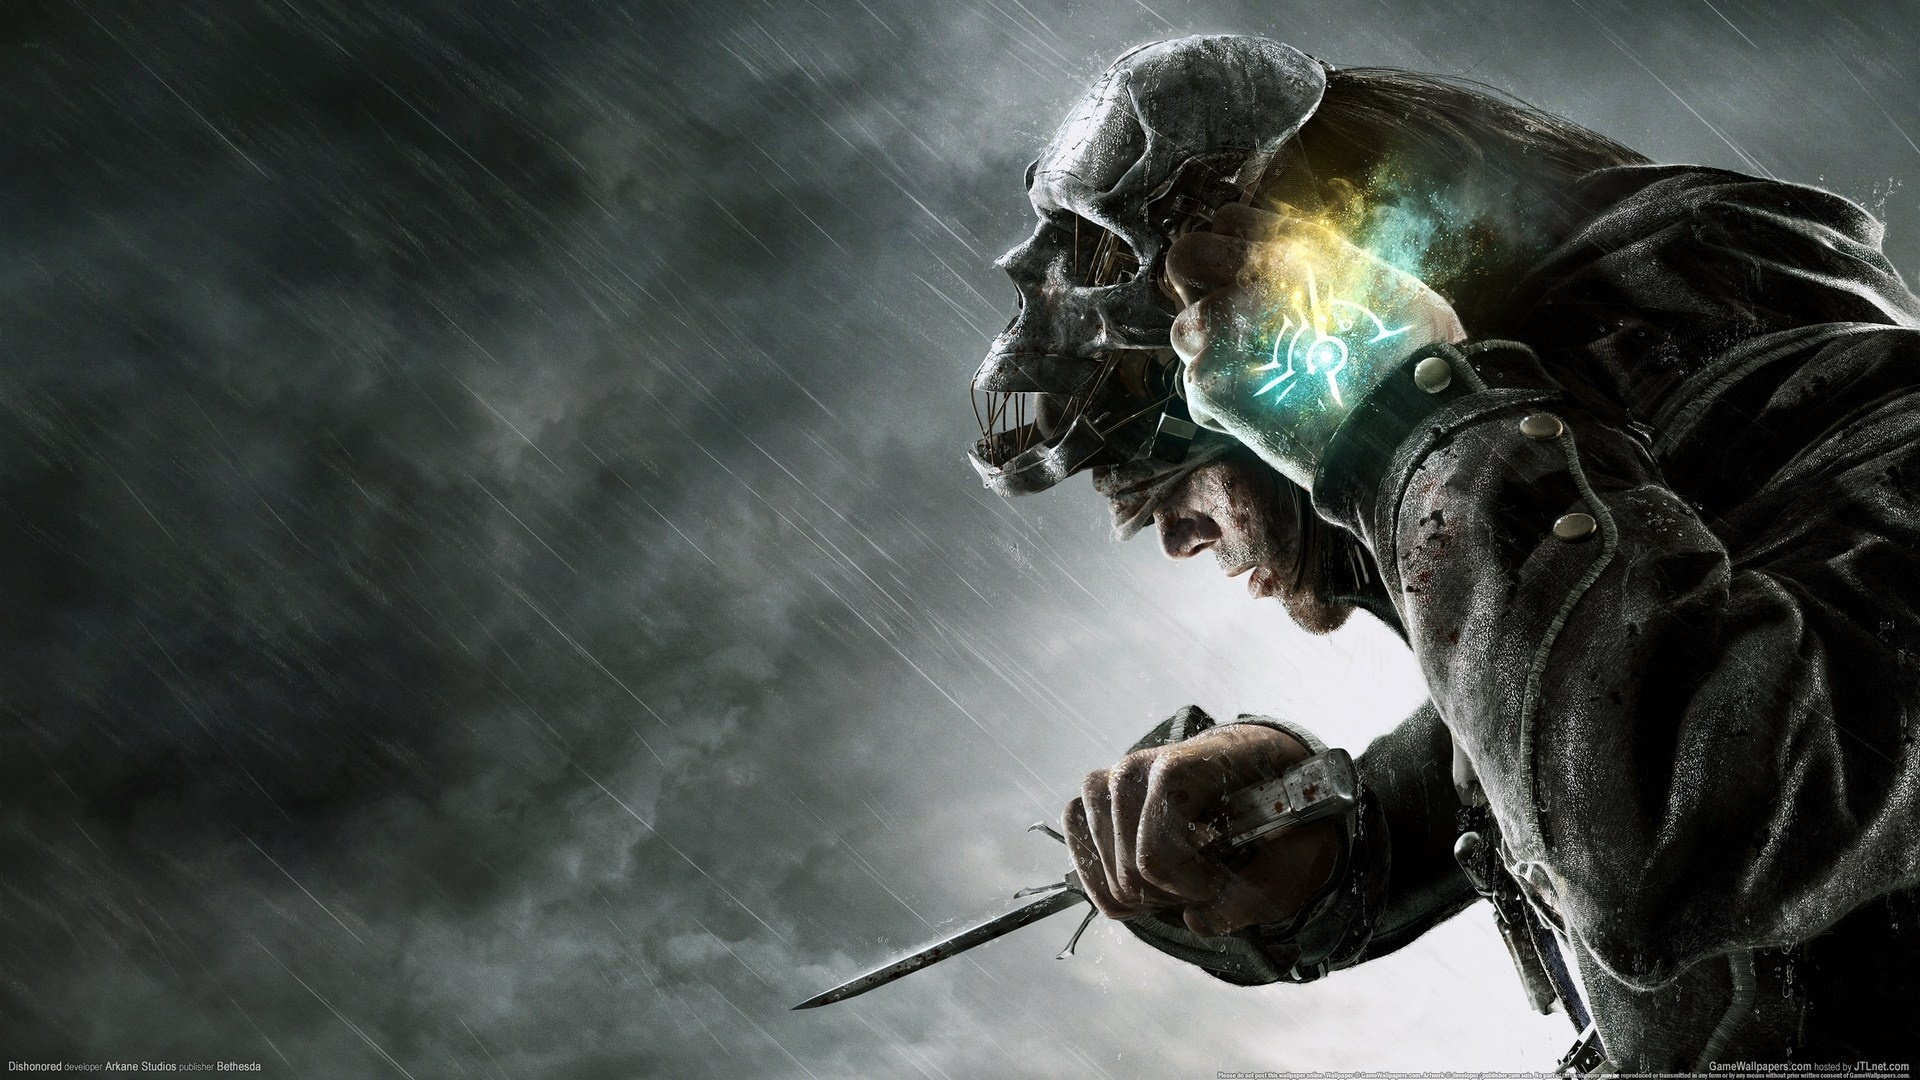 Dishonored Wallpaper 4k: Wallpaper Dishonored Wide 1920x1080 Full HD 2K Picture, Image